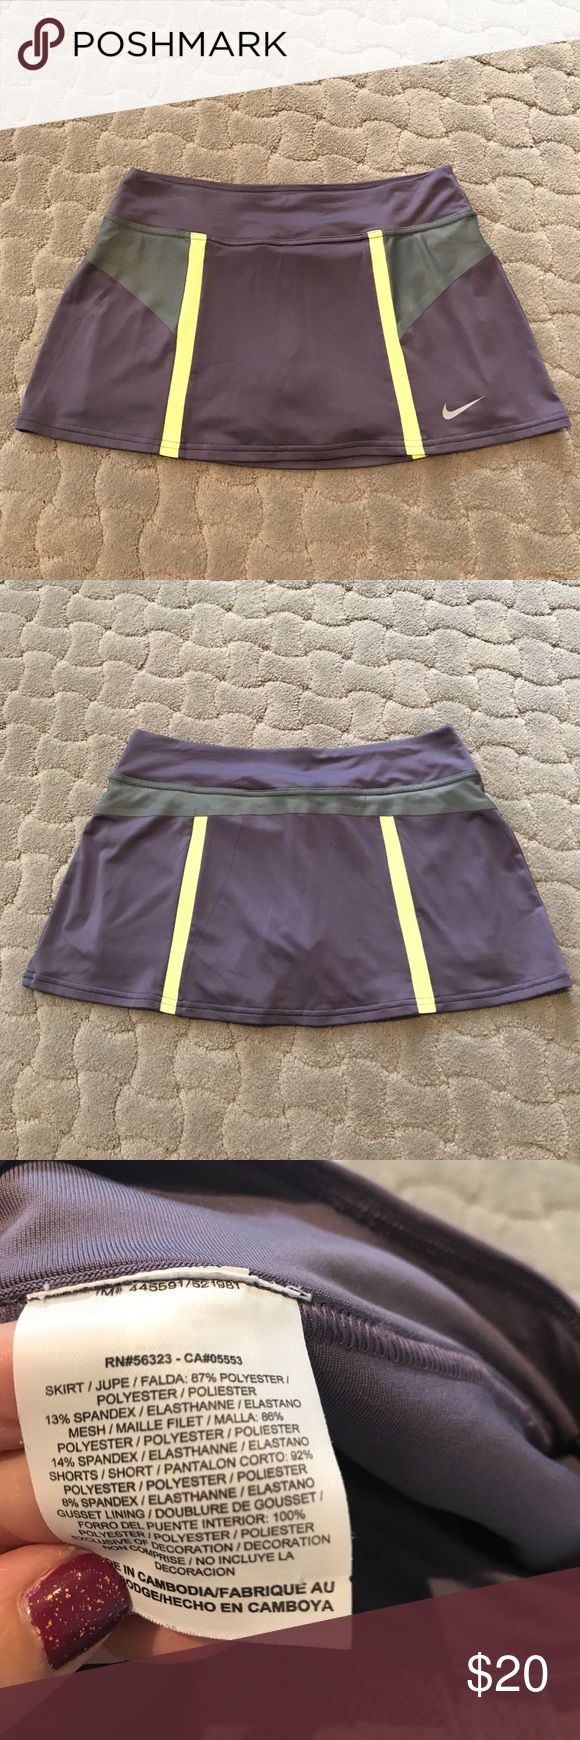 LIKE NEW NIKE SKIRT WITH BUILT-IN SHORTS LIKE NEW NIKE SKIRT WITH BUILT-IN SHORTS Nike Skirts